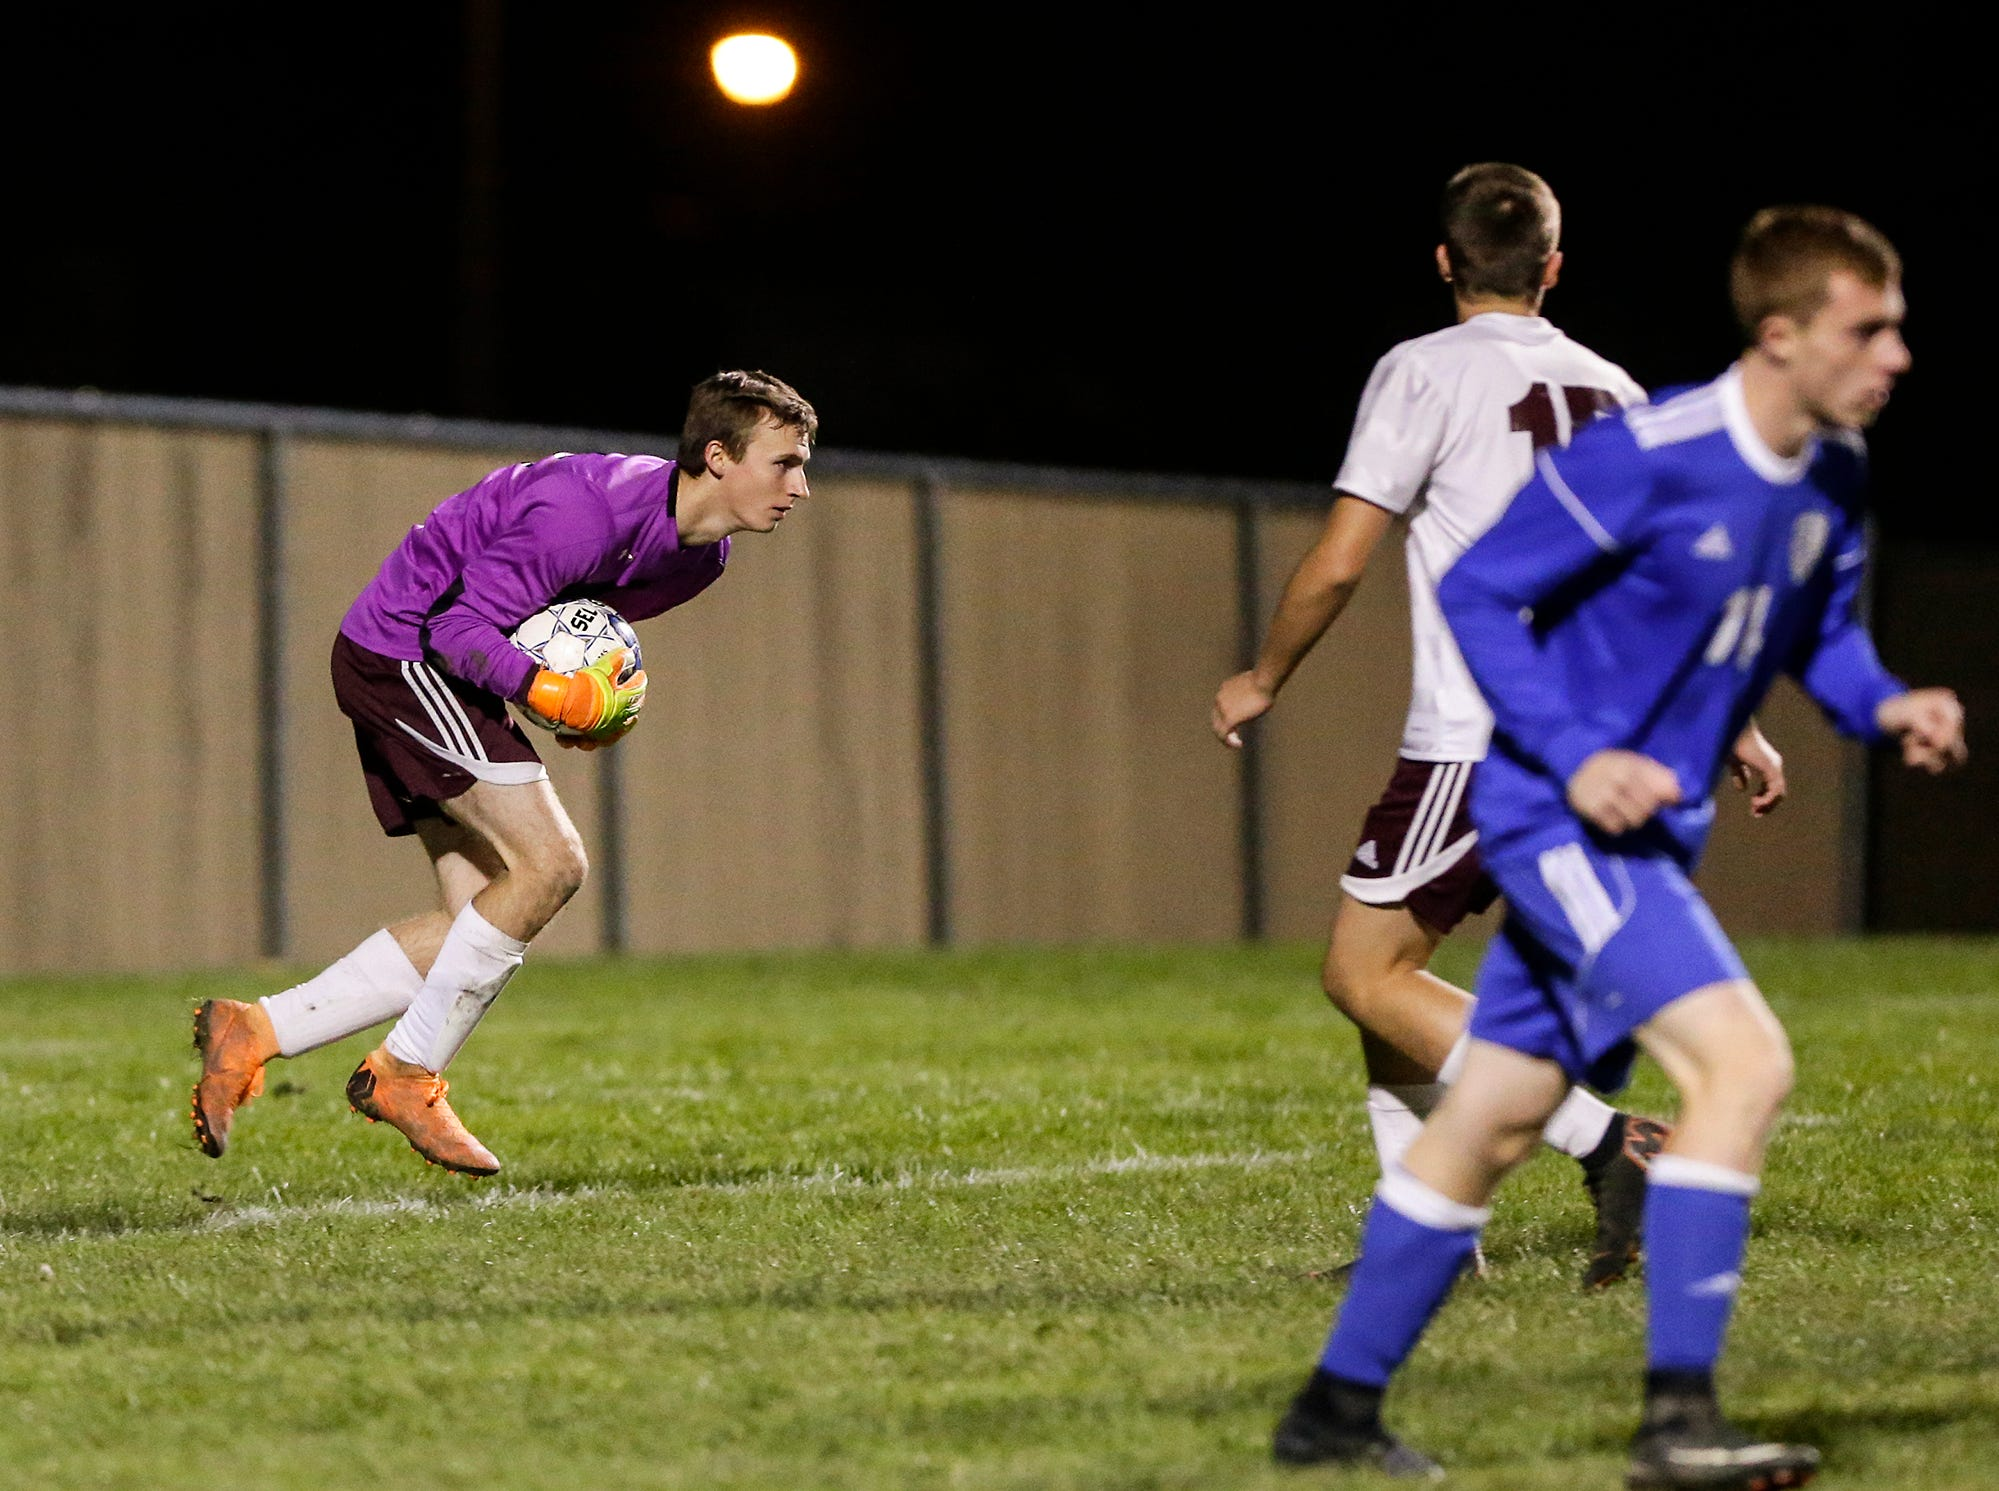 Omro High School soccer's Zachery Milner stops a ball from scoring against Winnebago Lutheran Academy during their WIAA regional playoff game Thursday, October 18, 2018 in Fond du Lac, Wisconsin. Doug Raflik/USA TODAY NETWORK-Wisconsin